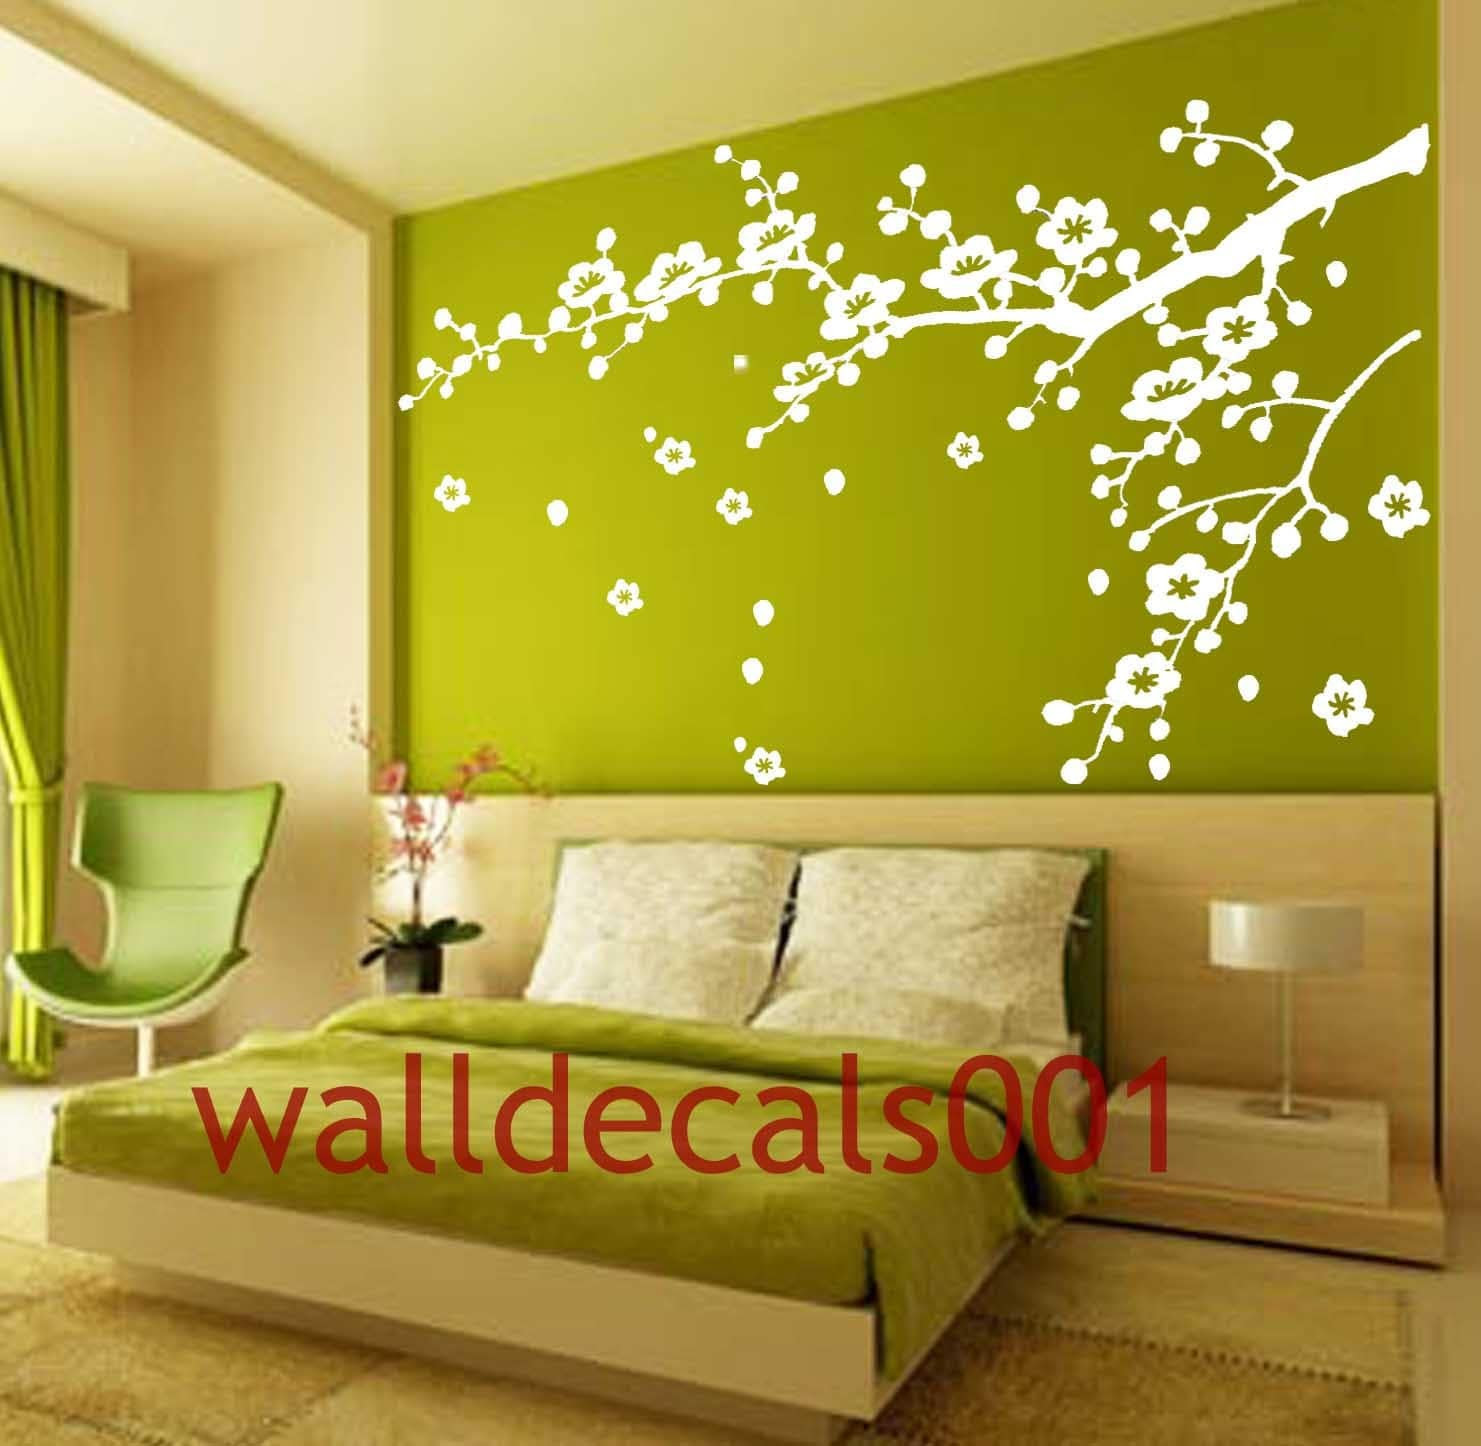 Wall Decor Decals | Rumah Minimalis